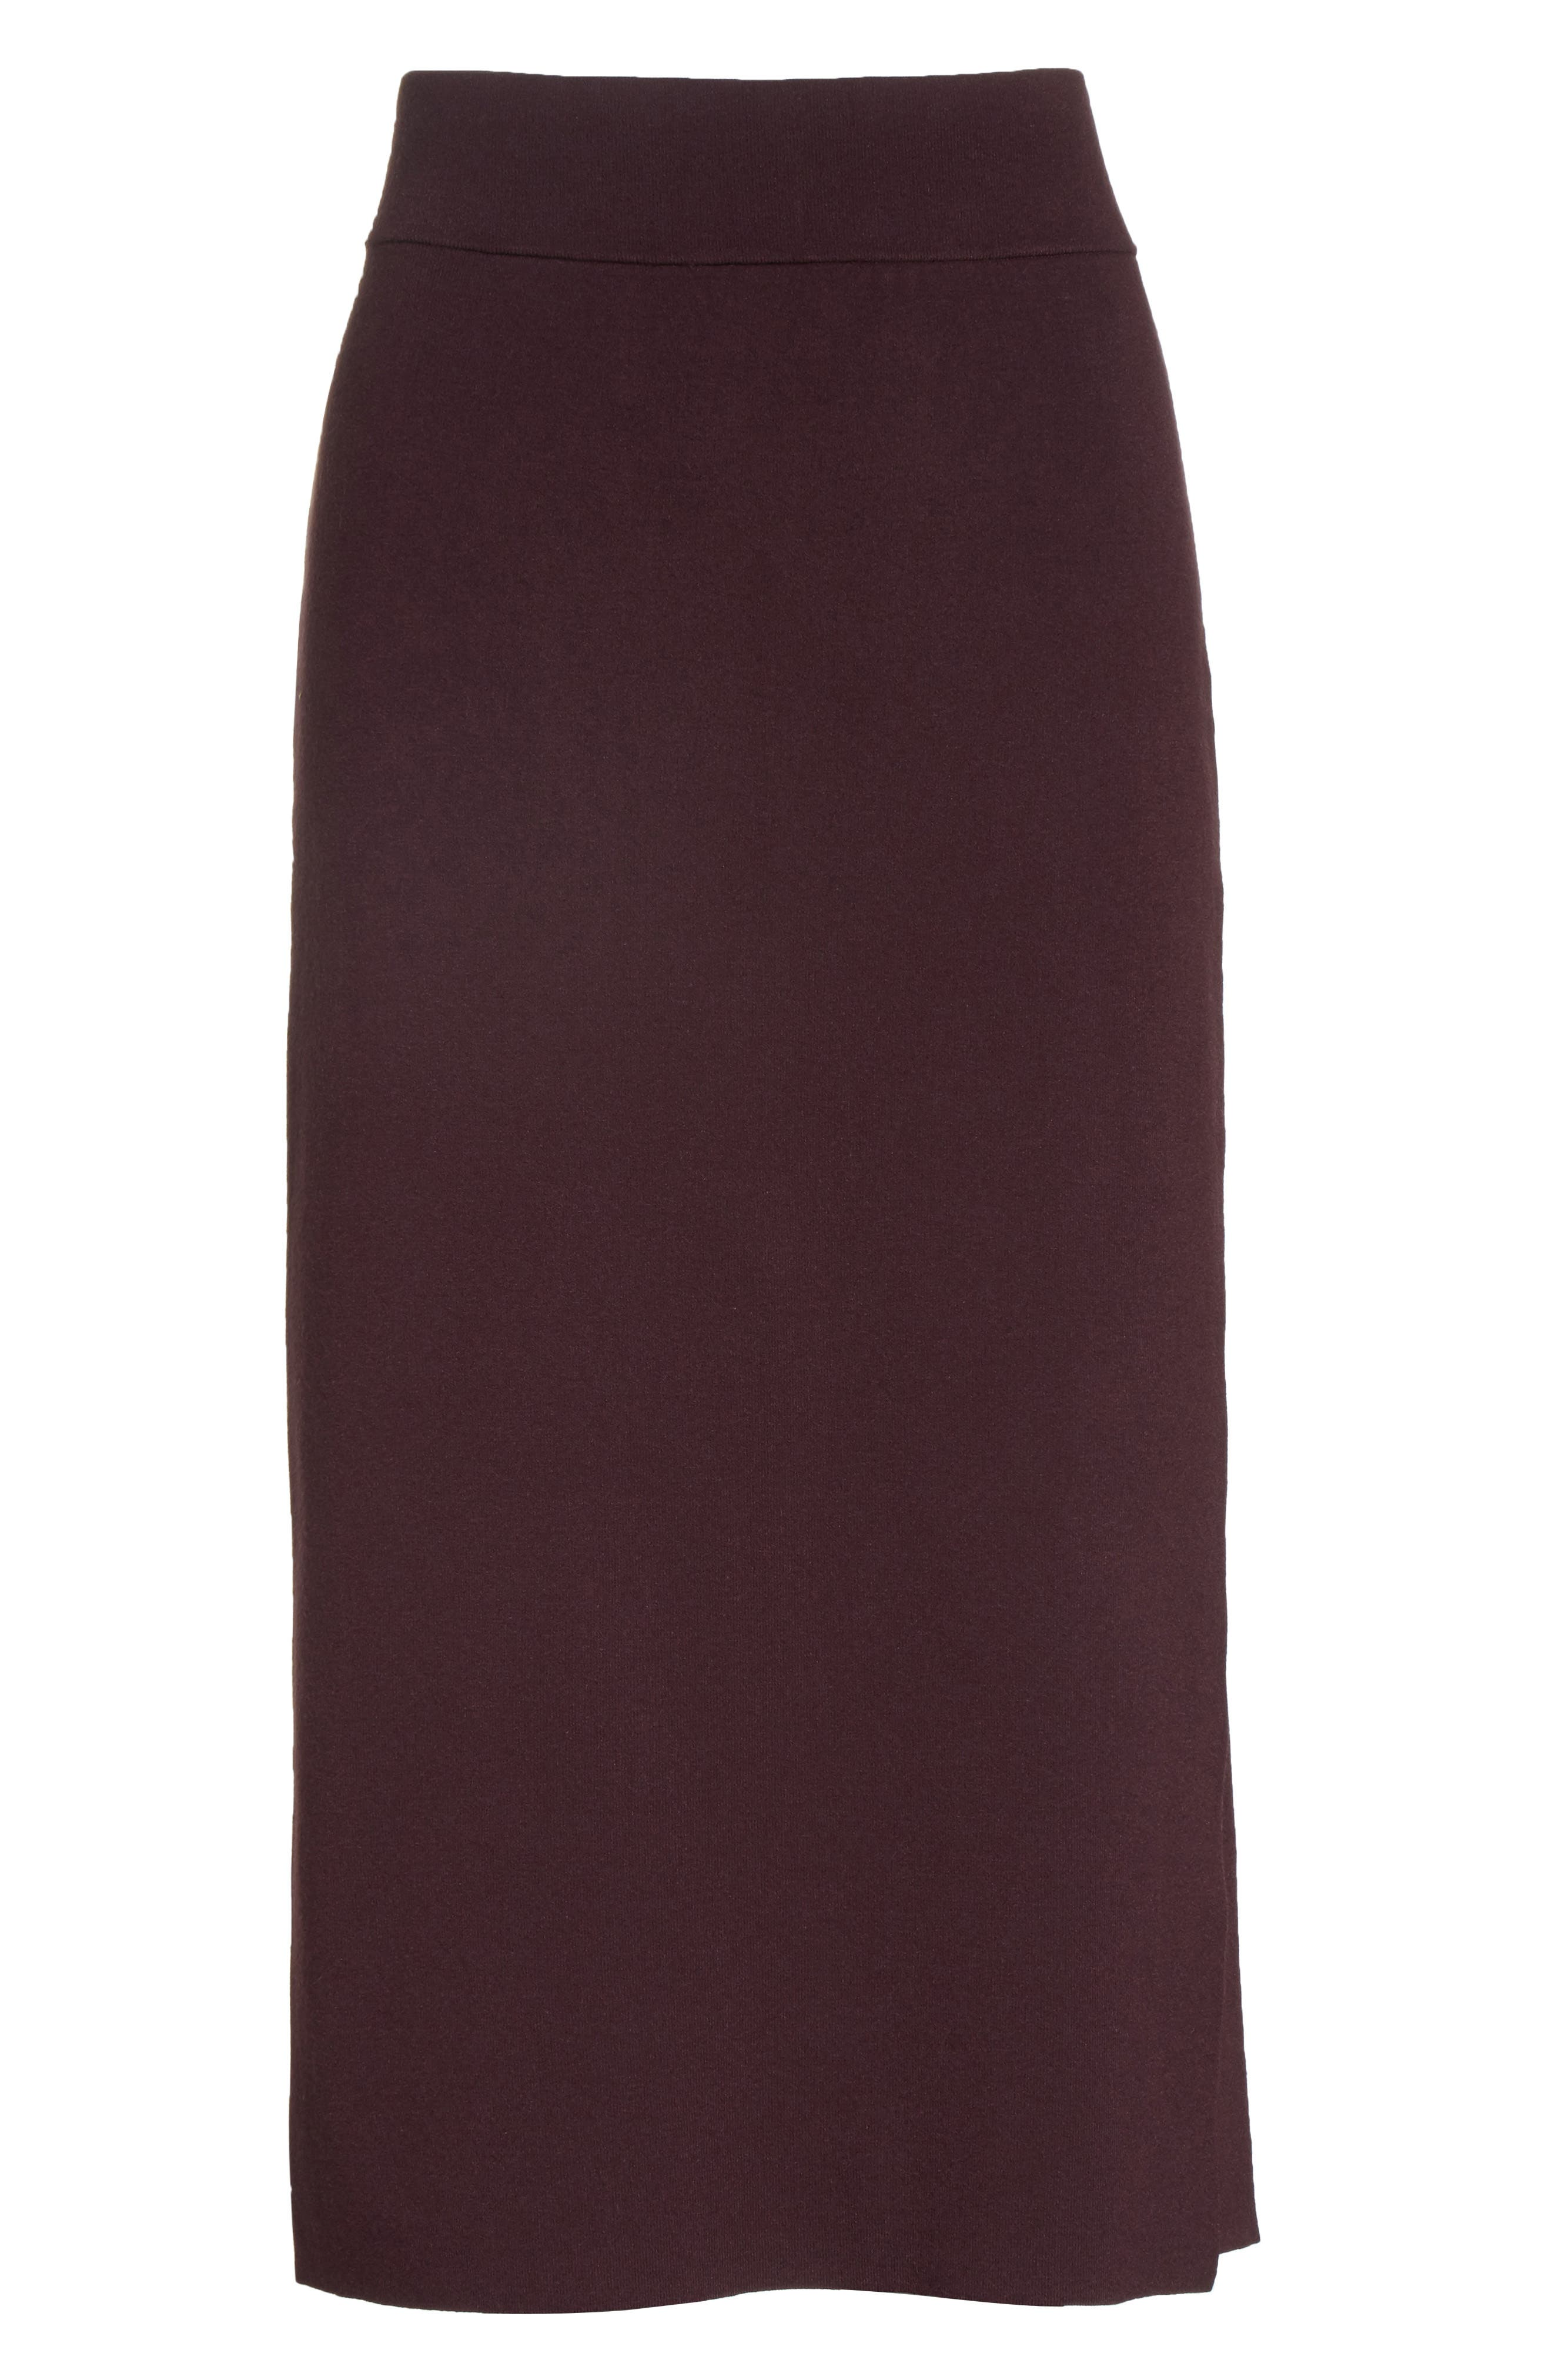 Smith Knit Pencil Skirt,                             Alternate thumbnail 7, color,                             Raisin